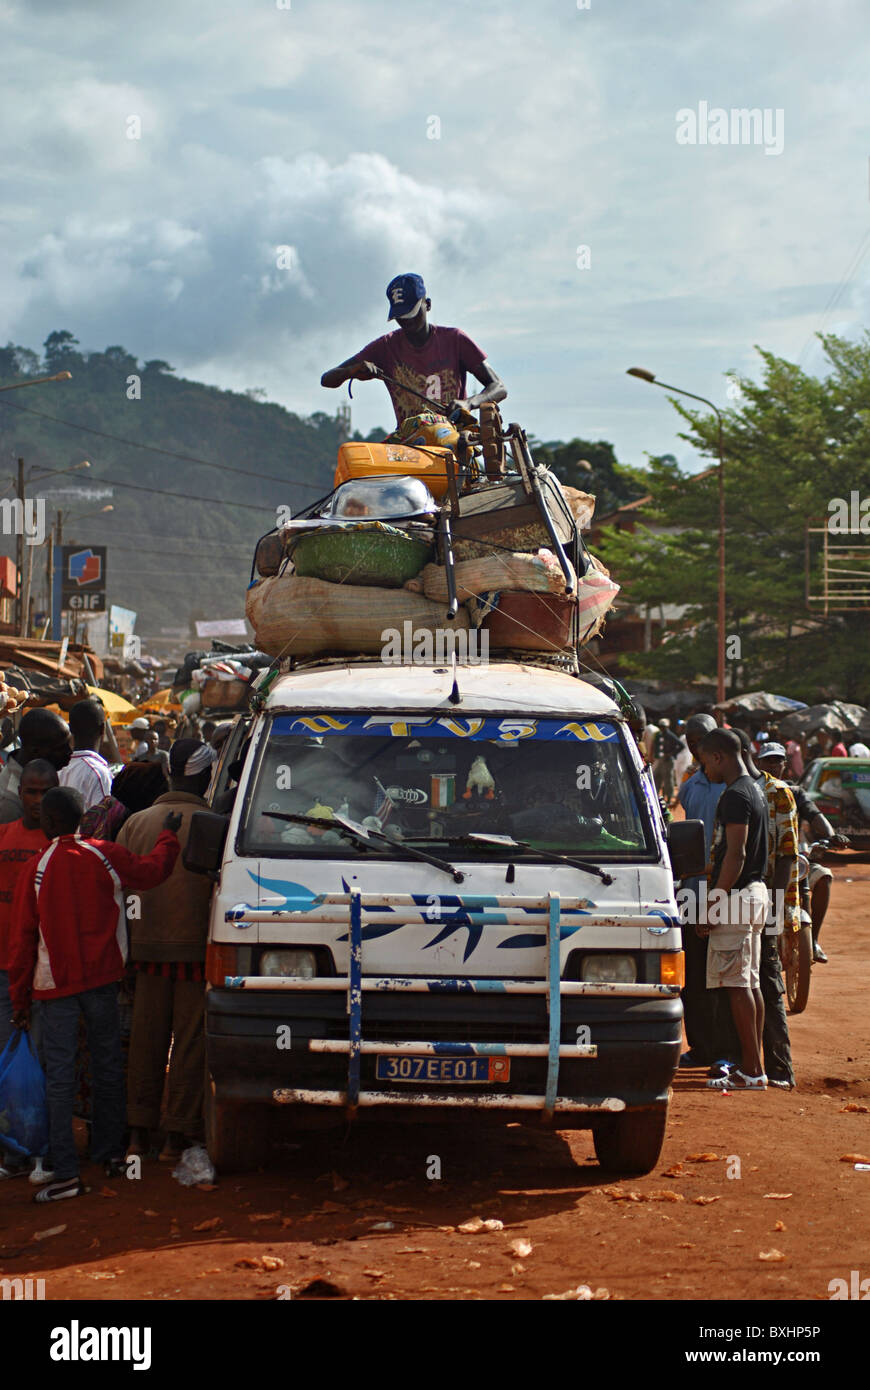 Man loading up a minibus in the Ivory Coast, West Africa - Stock Image